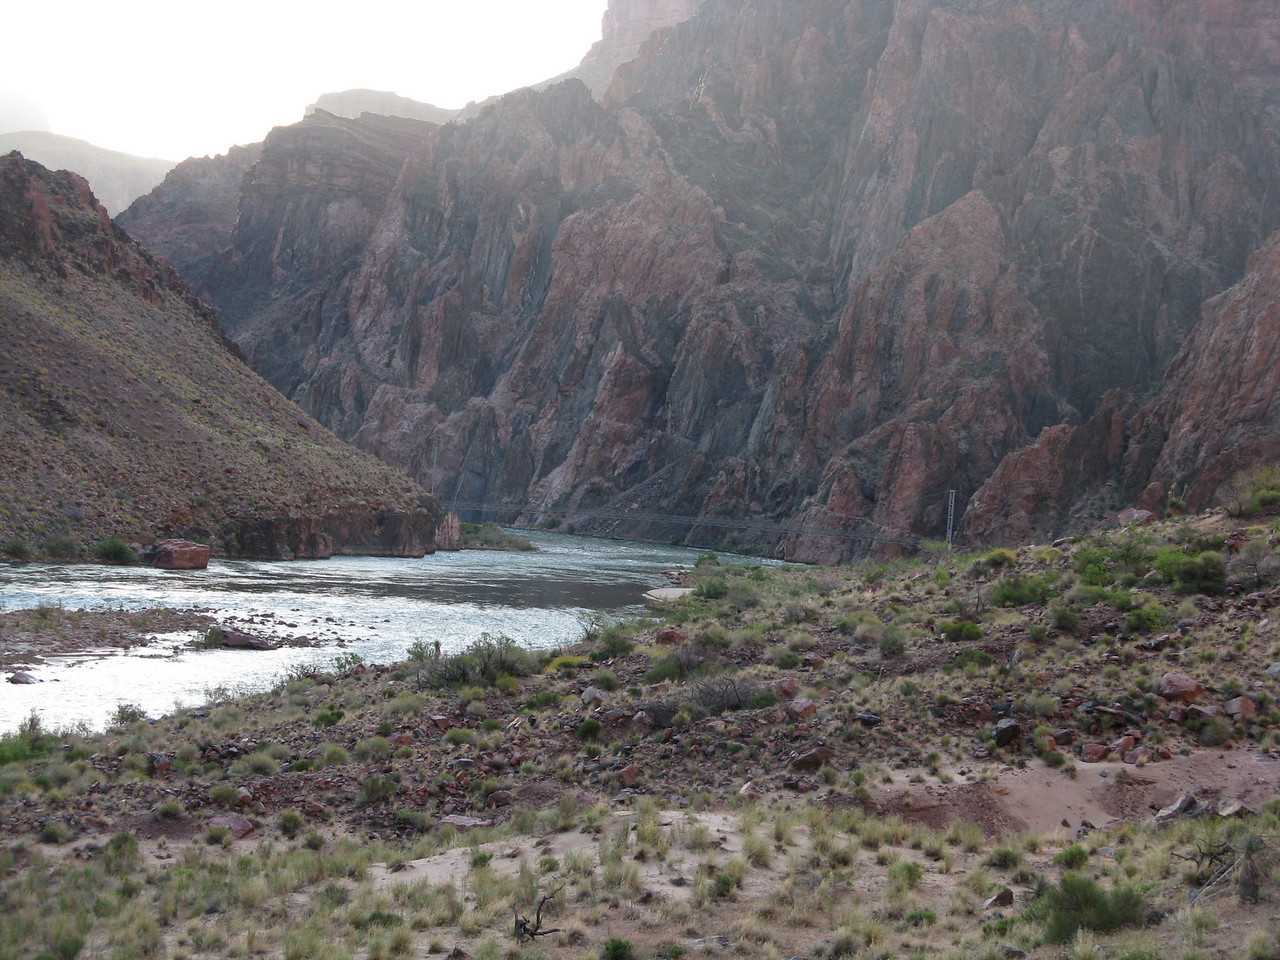 Sun above and shadows in the canyon.  The silver bridge is just a gossamer in this image.